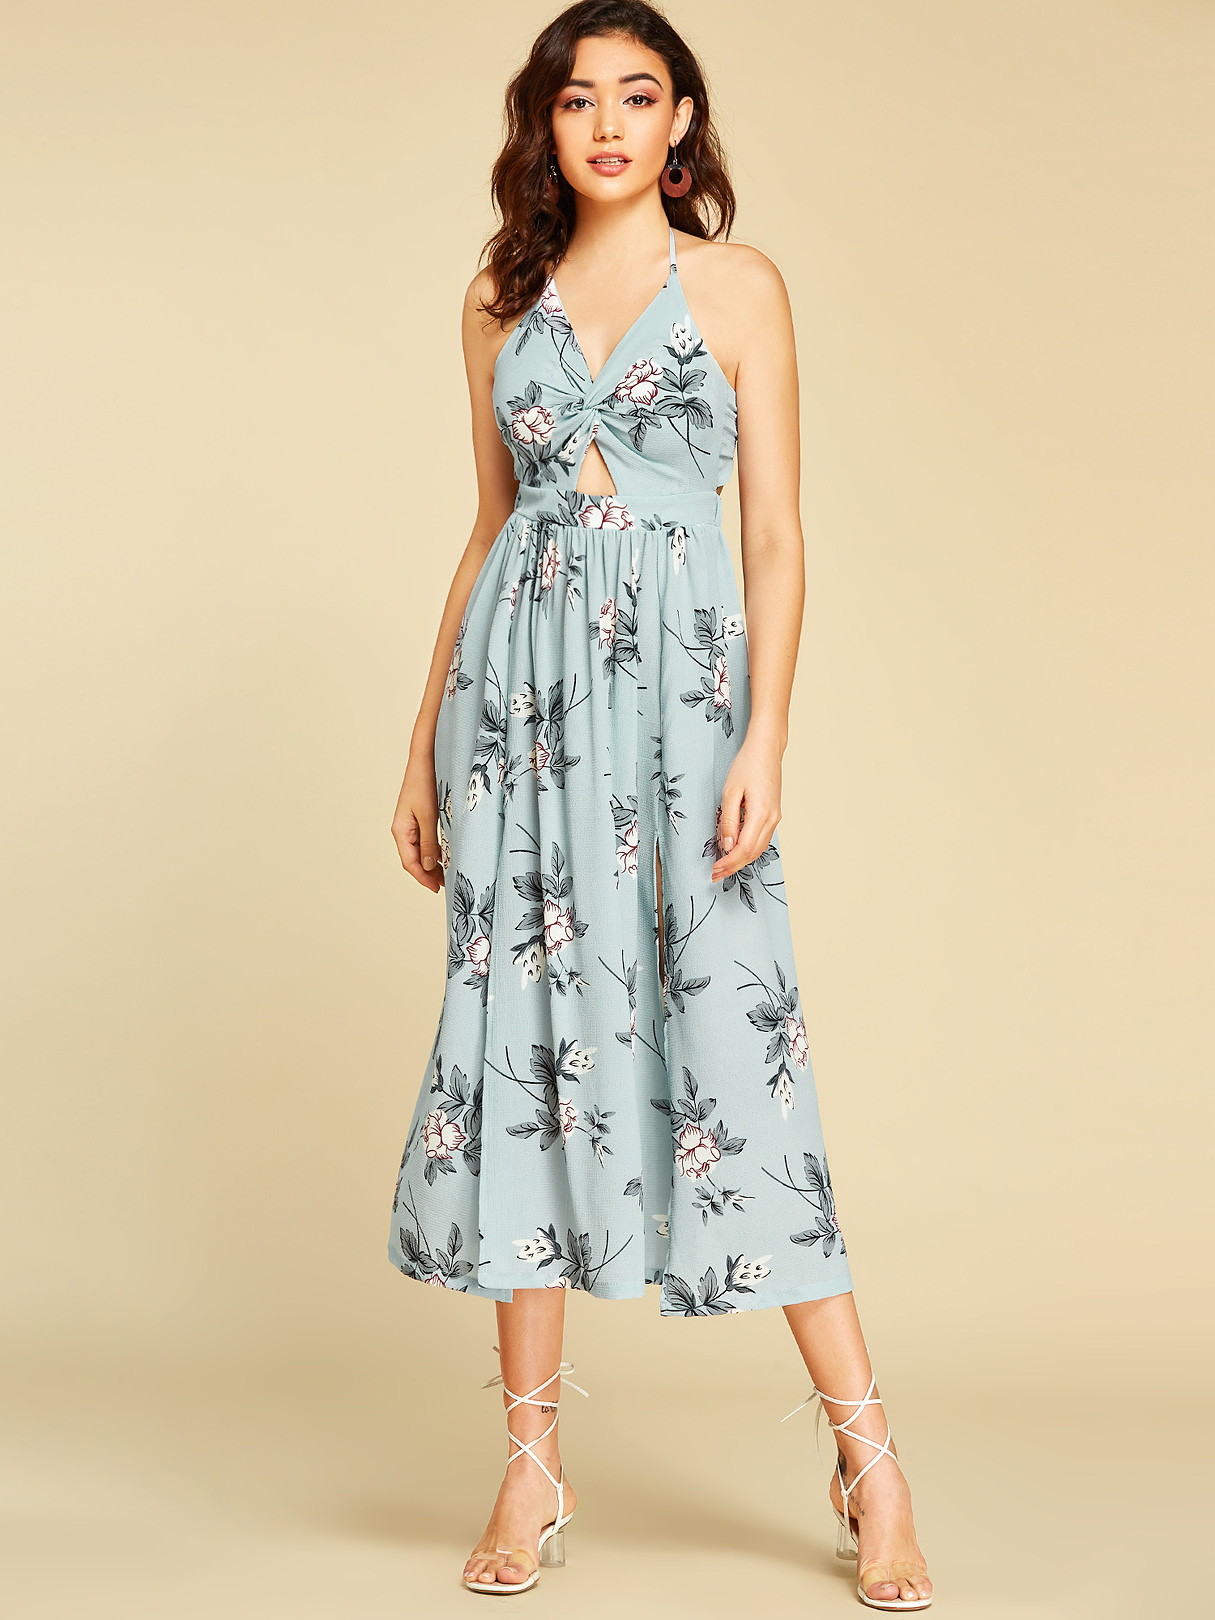 Blue Backless Design Random Floral Print Halter Dress